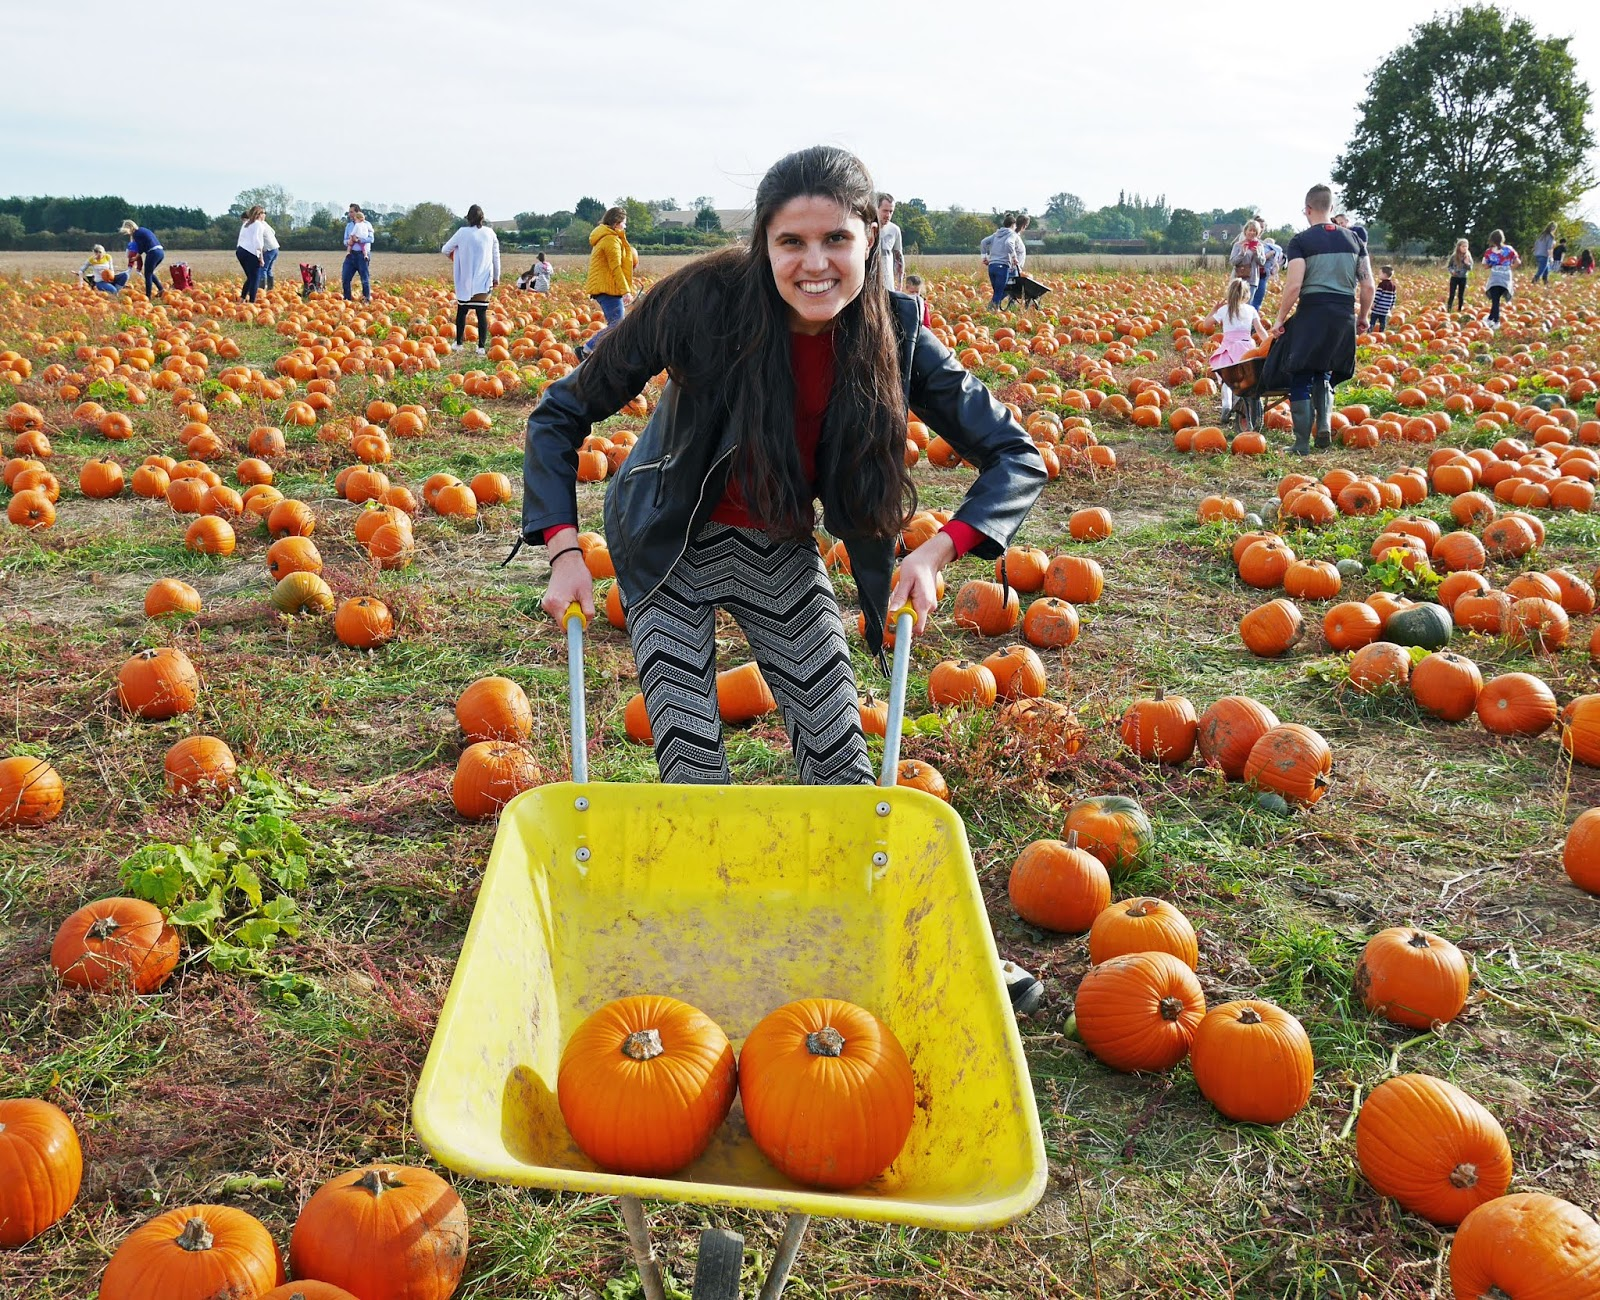 Kat Last at Pick Your Own Pumpkin in Sevington, Ashford